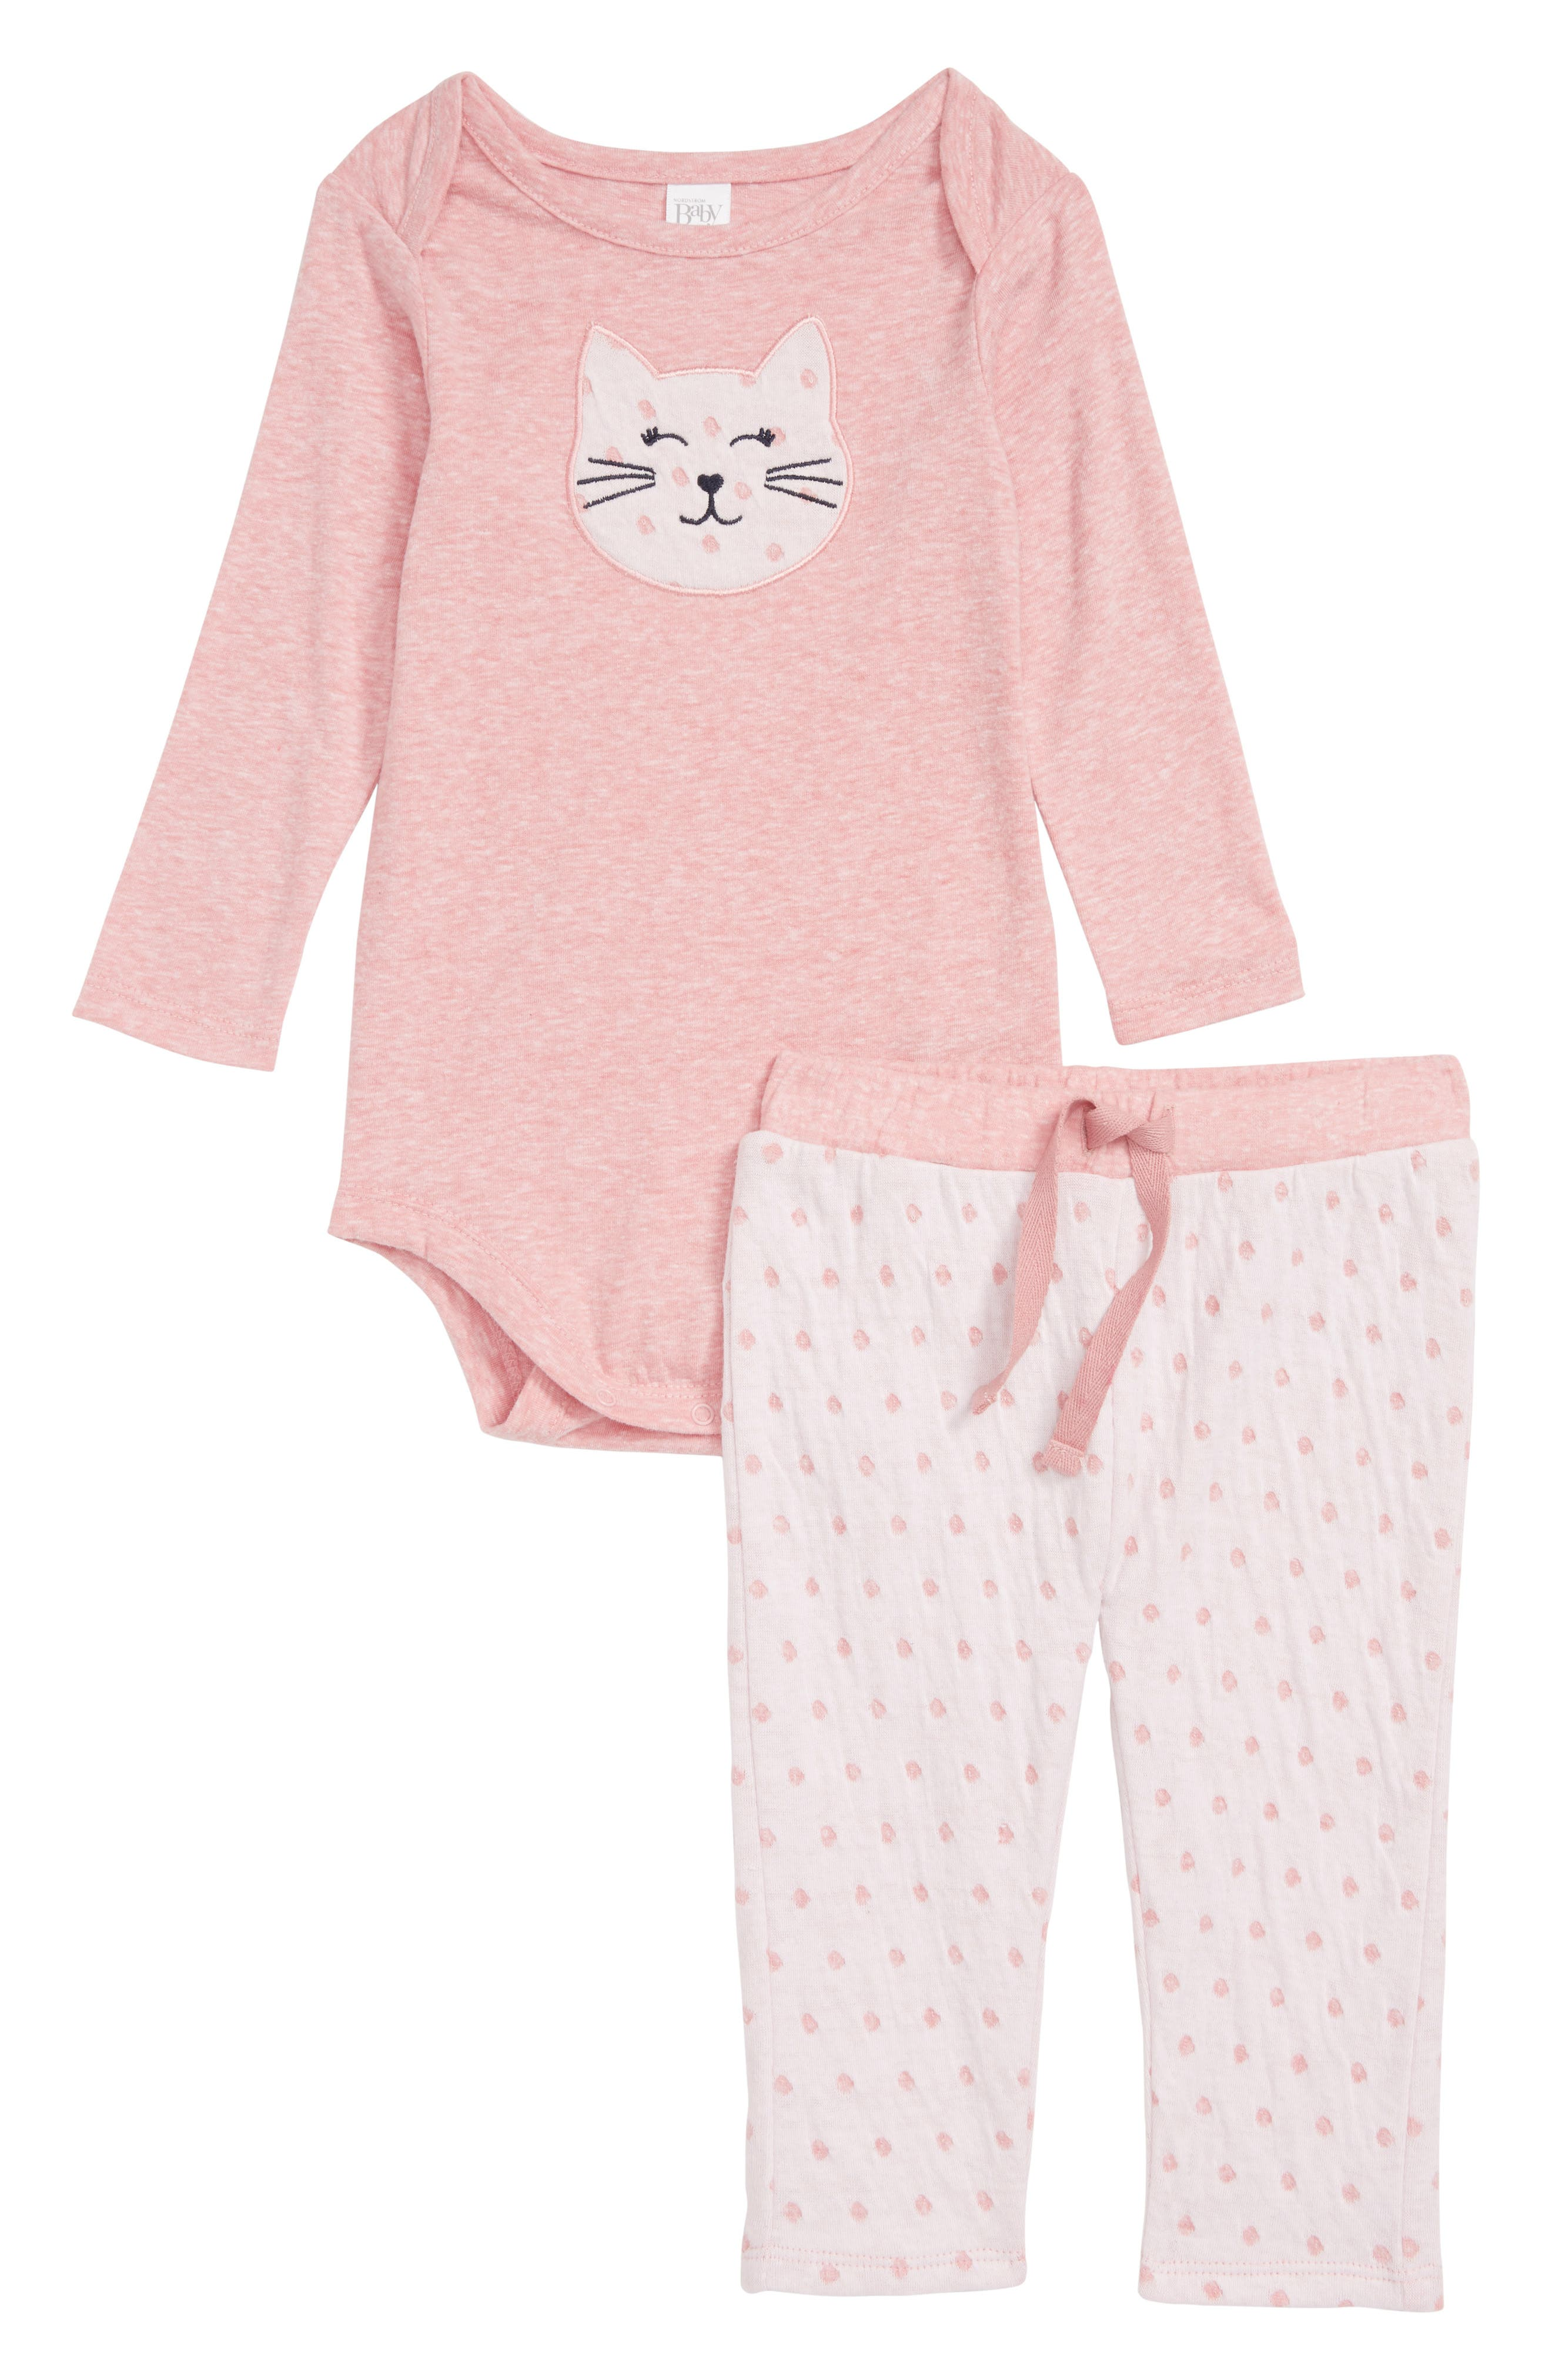 Cat Bodysuit & Pants Set,                             Main thumbnail 1, color,                             680